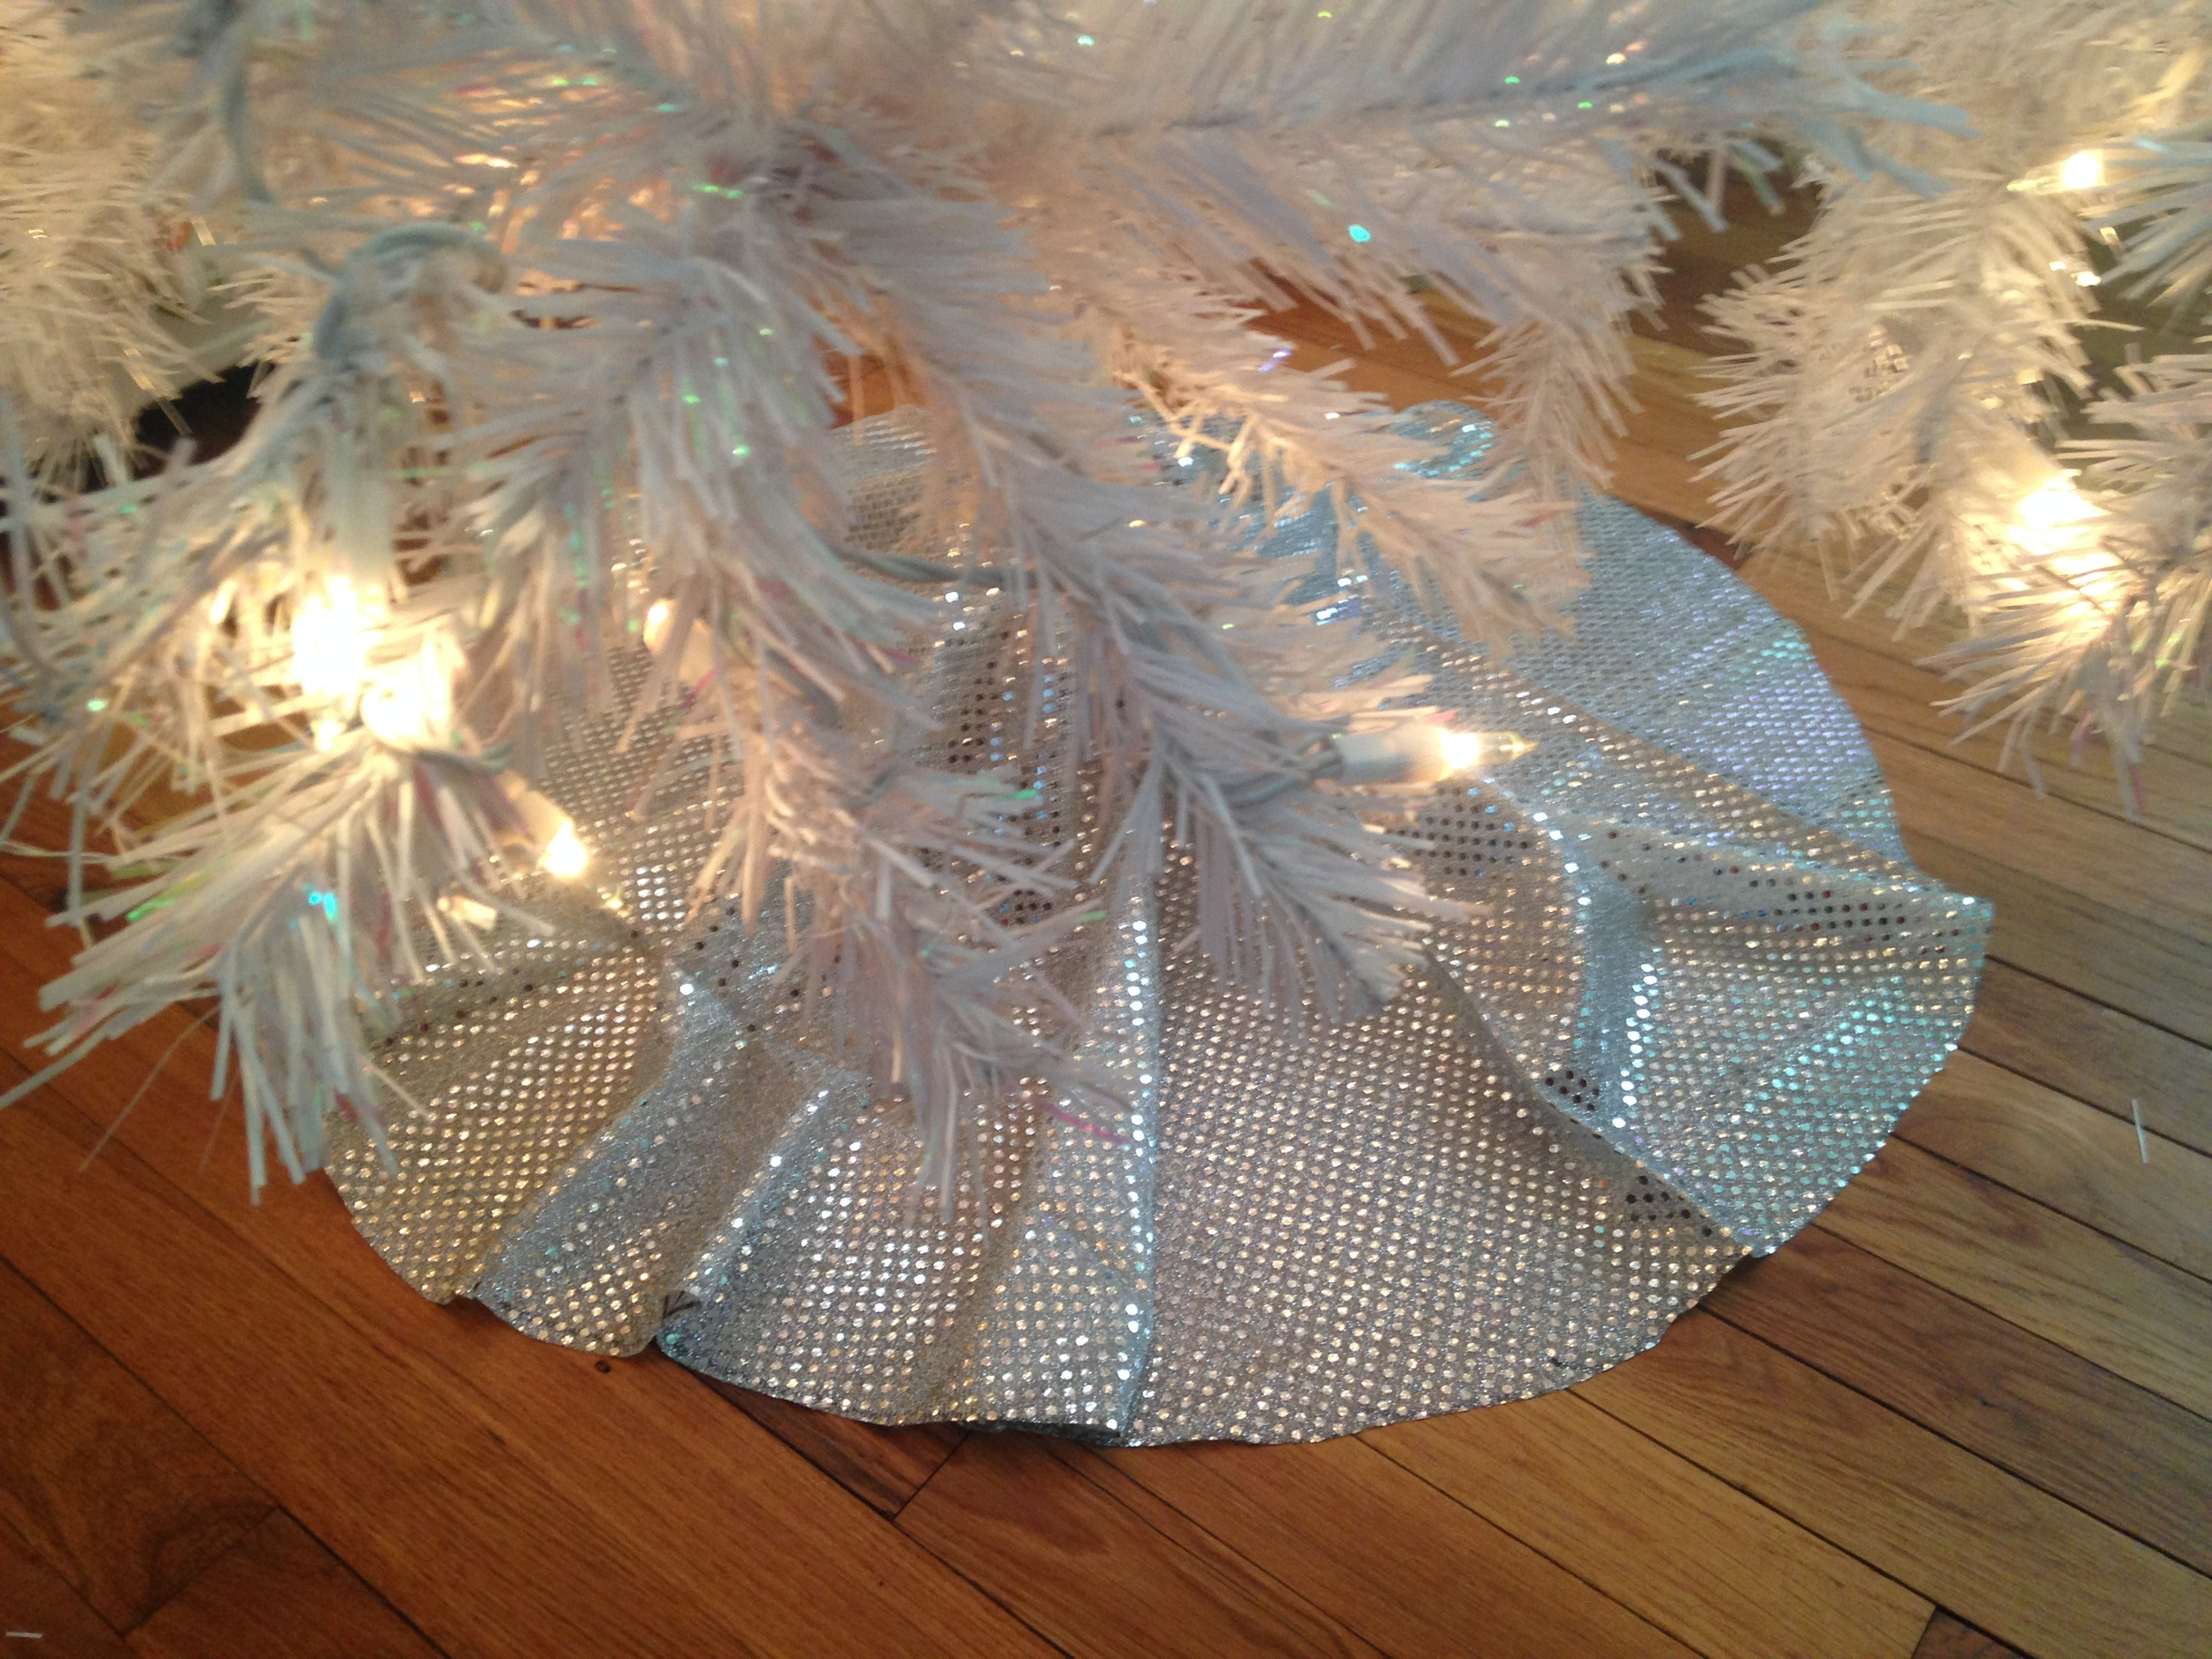 Shiniest tree skirt in the Verse. If you know that reference than you know Joss Whedon writes amazing television series' butterrible theme songs for them.